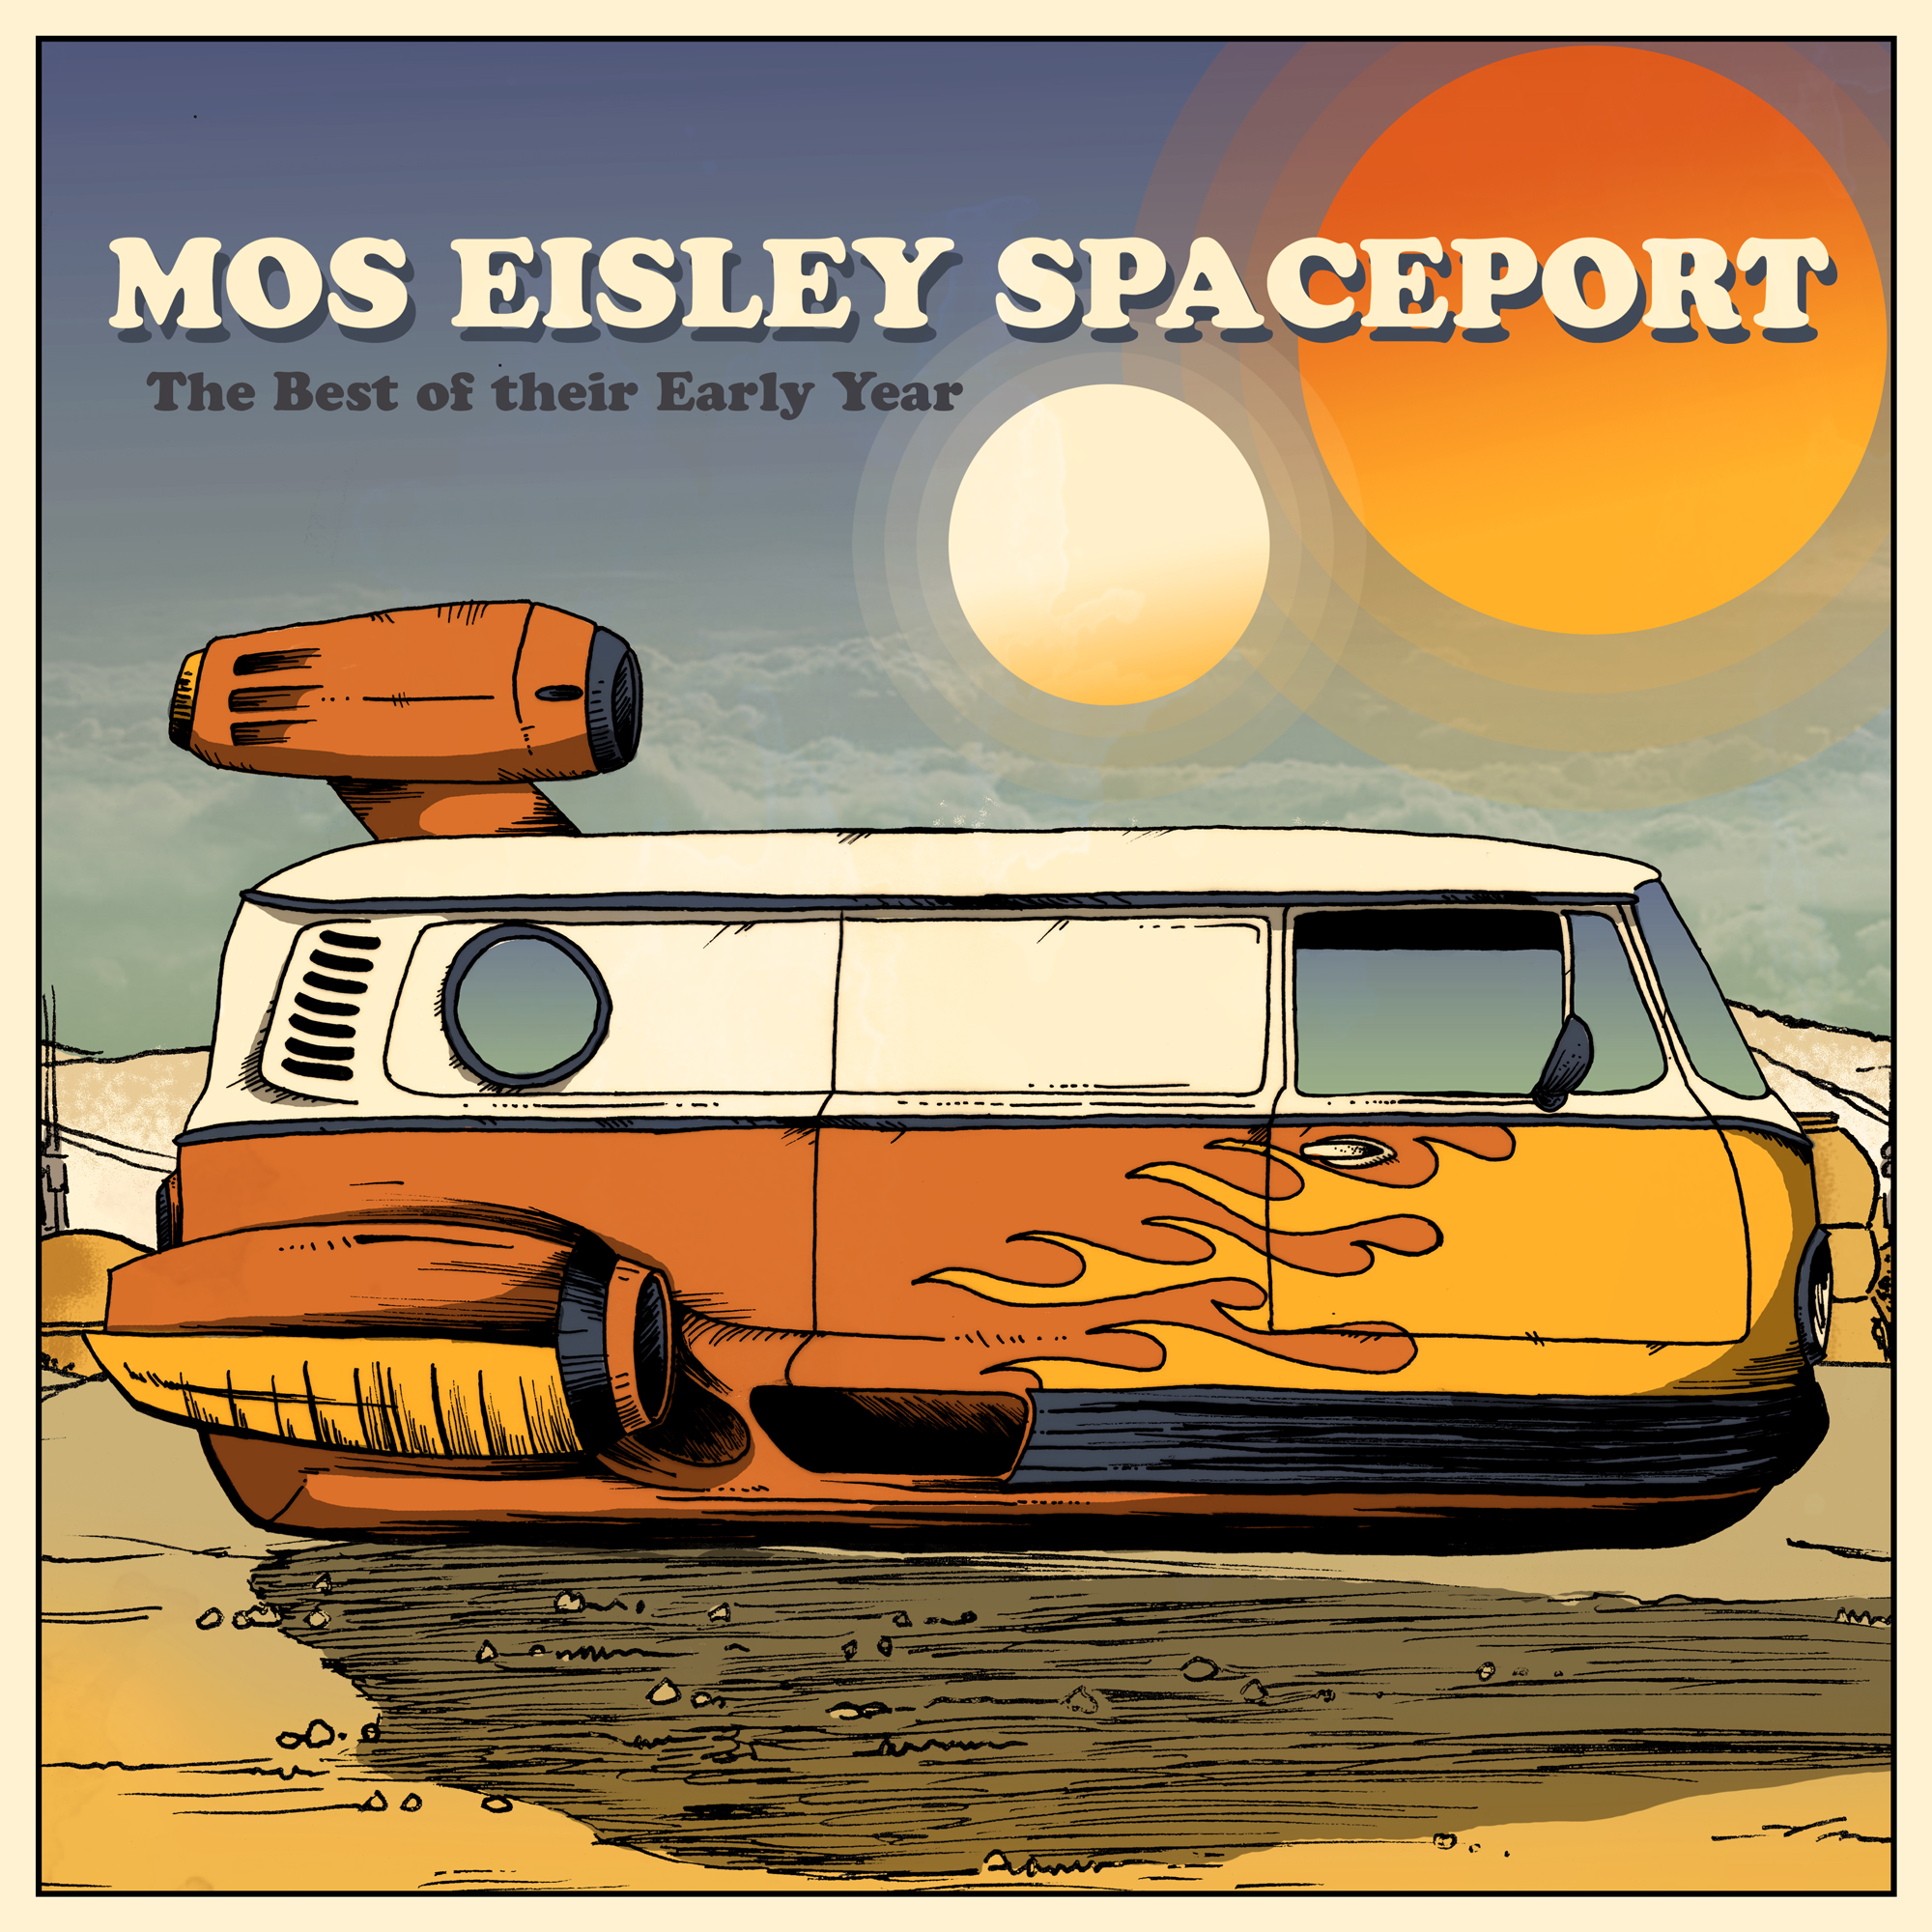 mos eisley spaceport the best of their early year